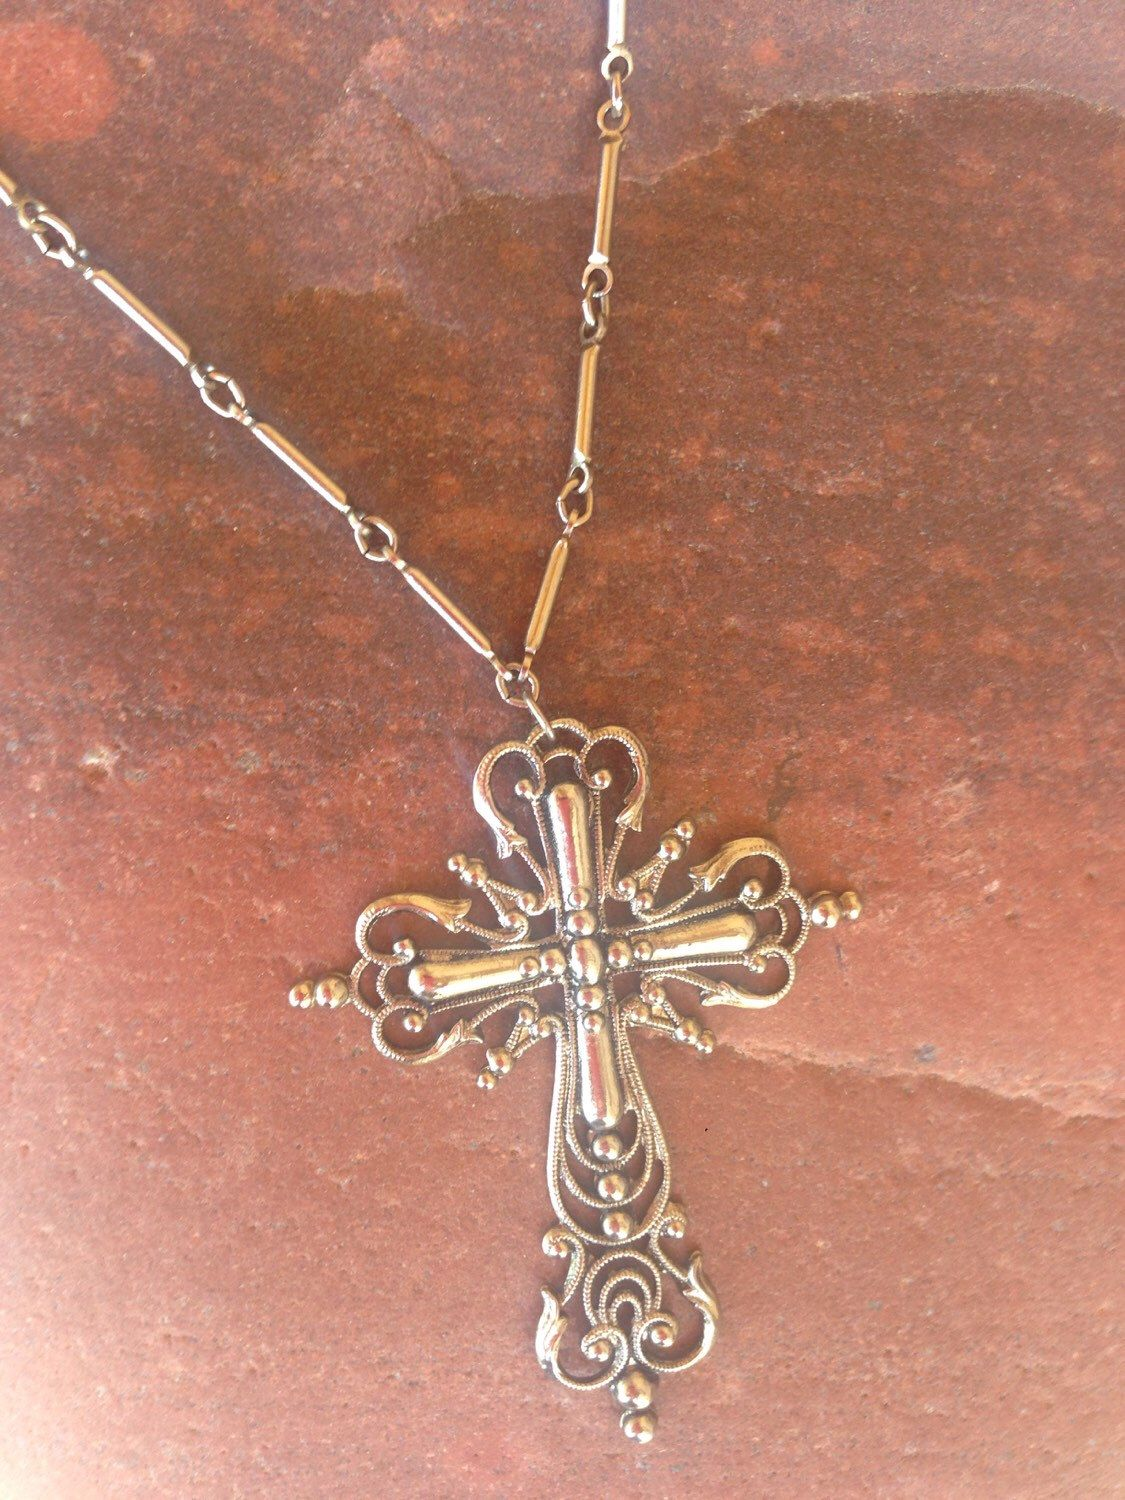 1970's Filigree Cross Necklace by luckyhandvintage on Etsy https://www.etsy.com/listing/385017066/1970s-filigree-cross-necklace